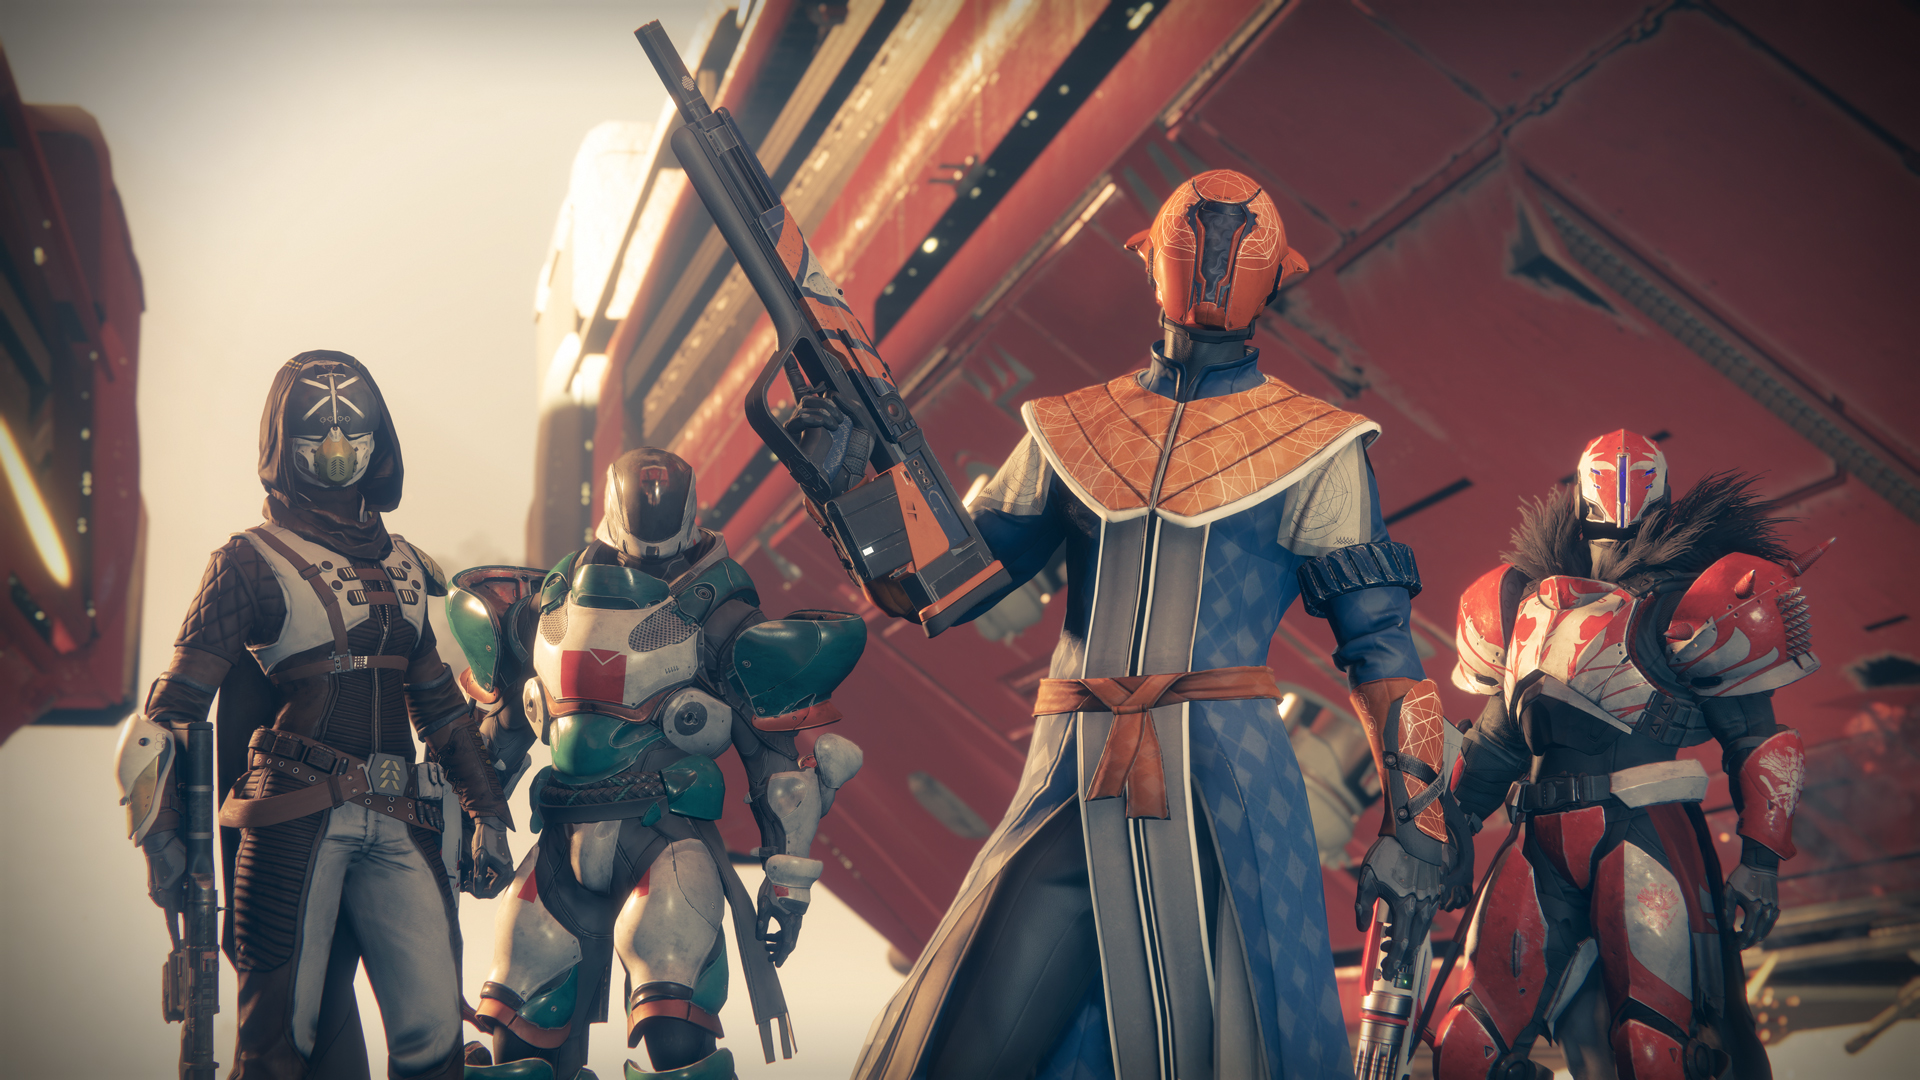 Destiny 2 - is it the sequel you were hoping for?